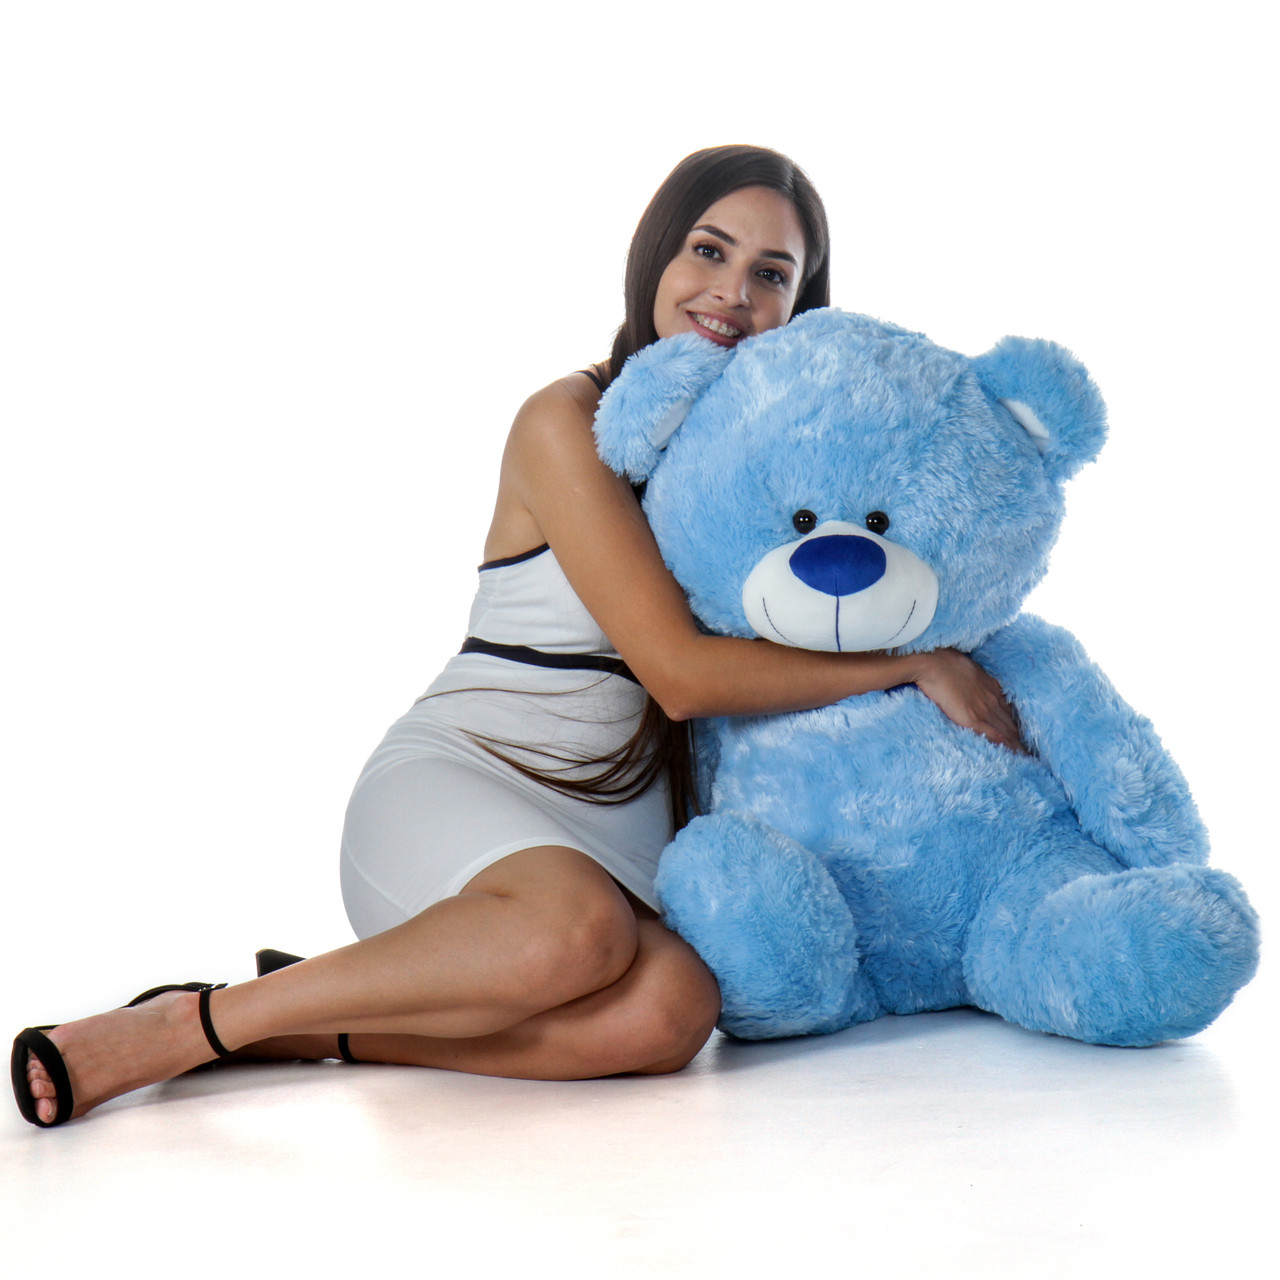 Super Soft and Cute Blue Shags Huge Teddy Bear